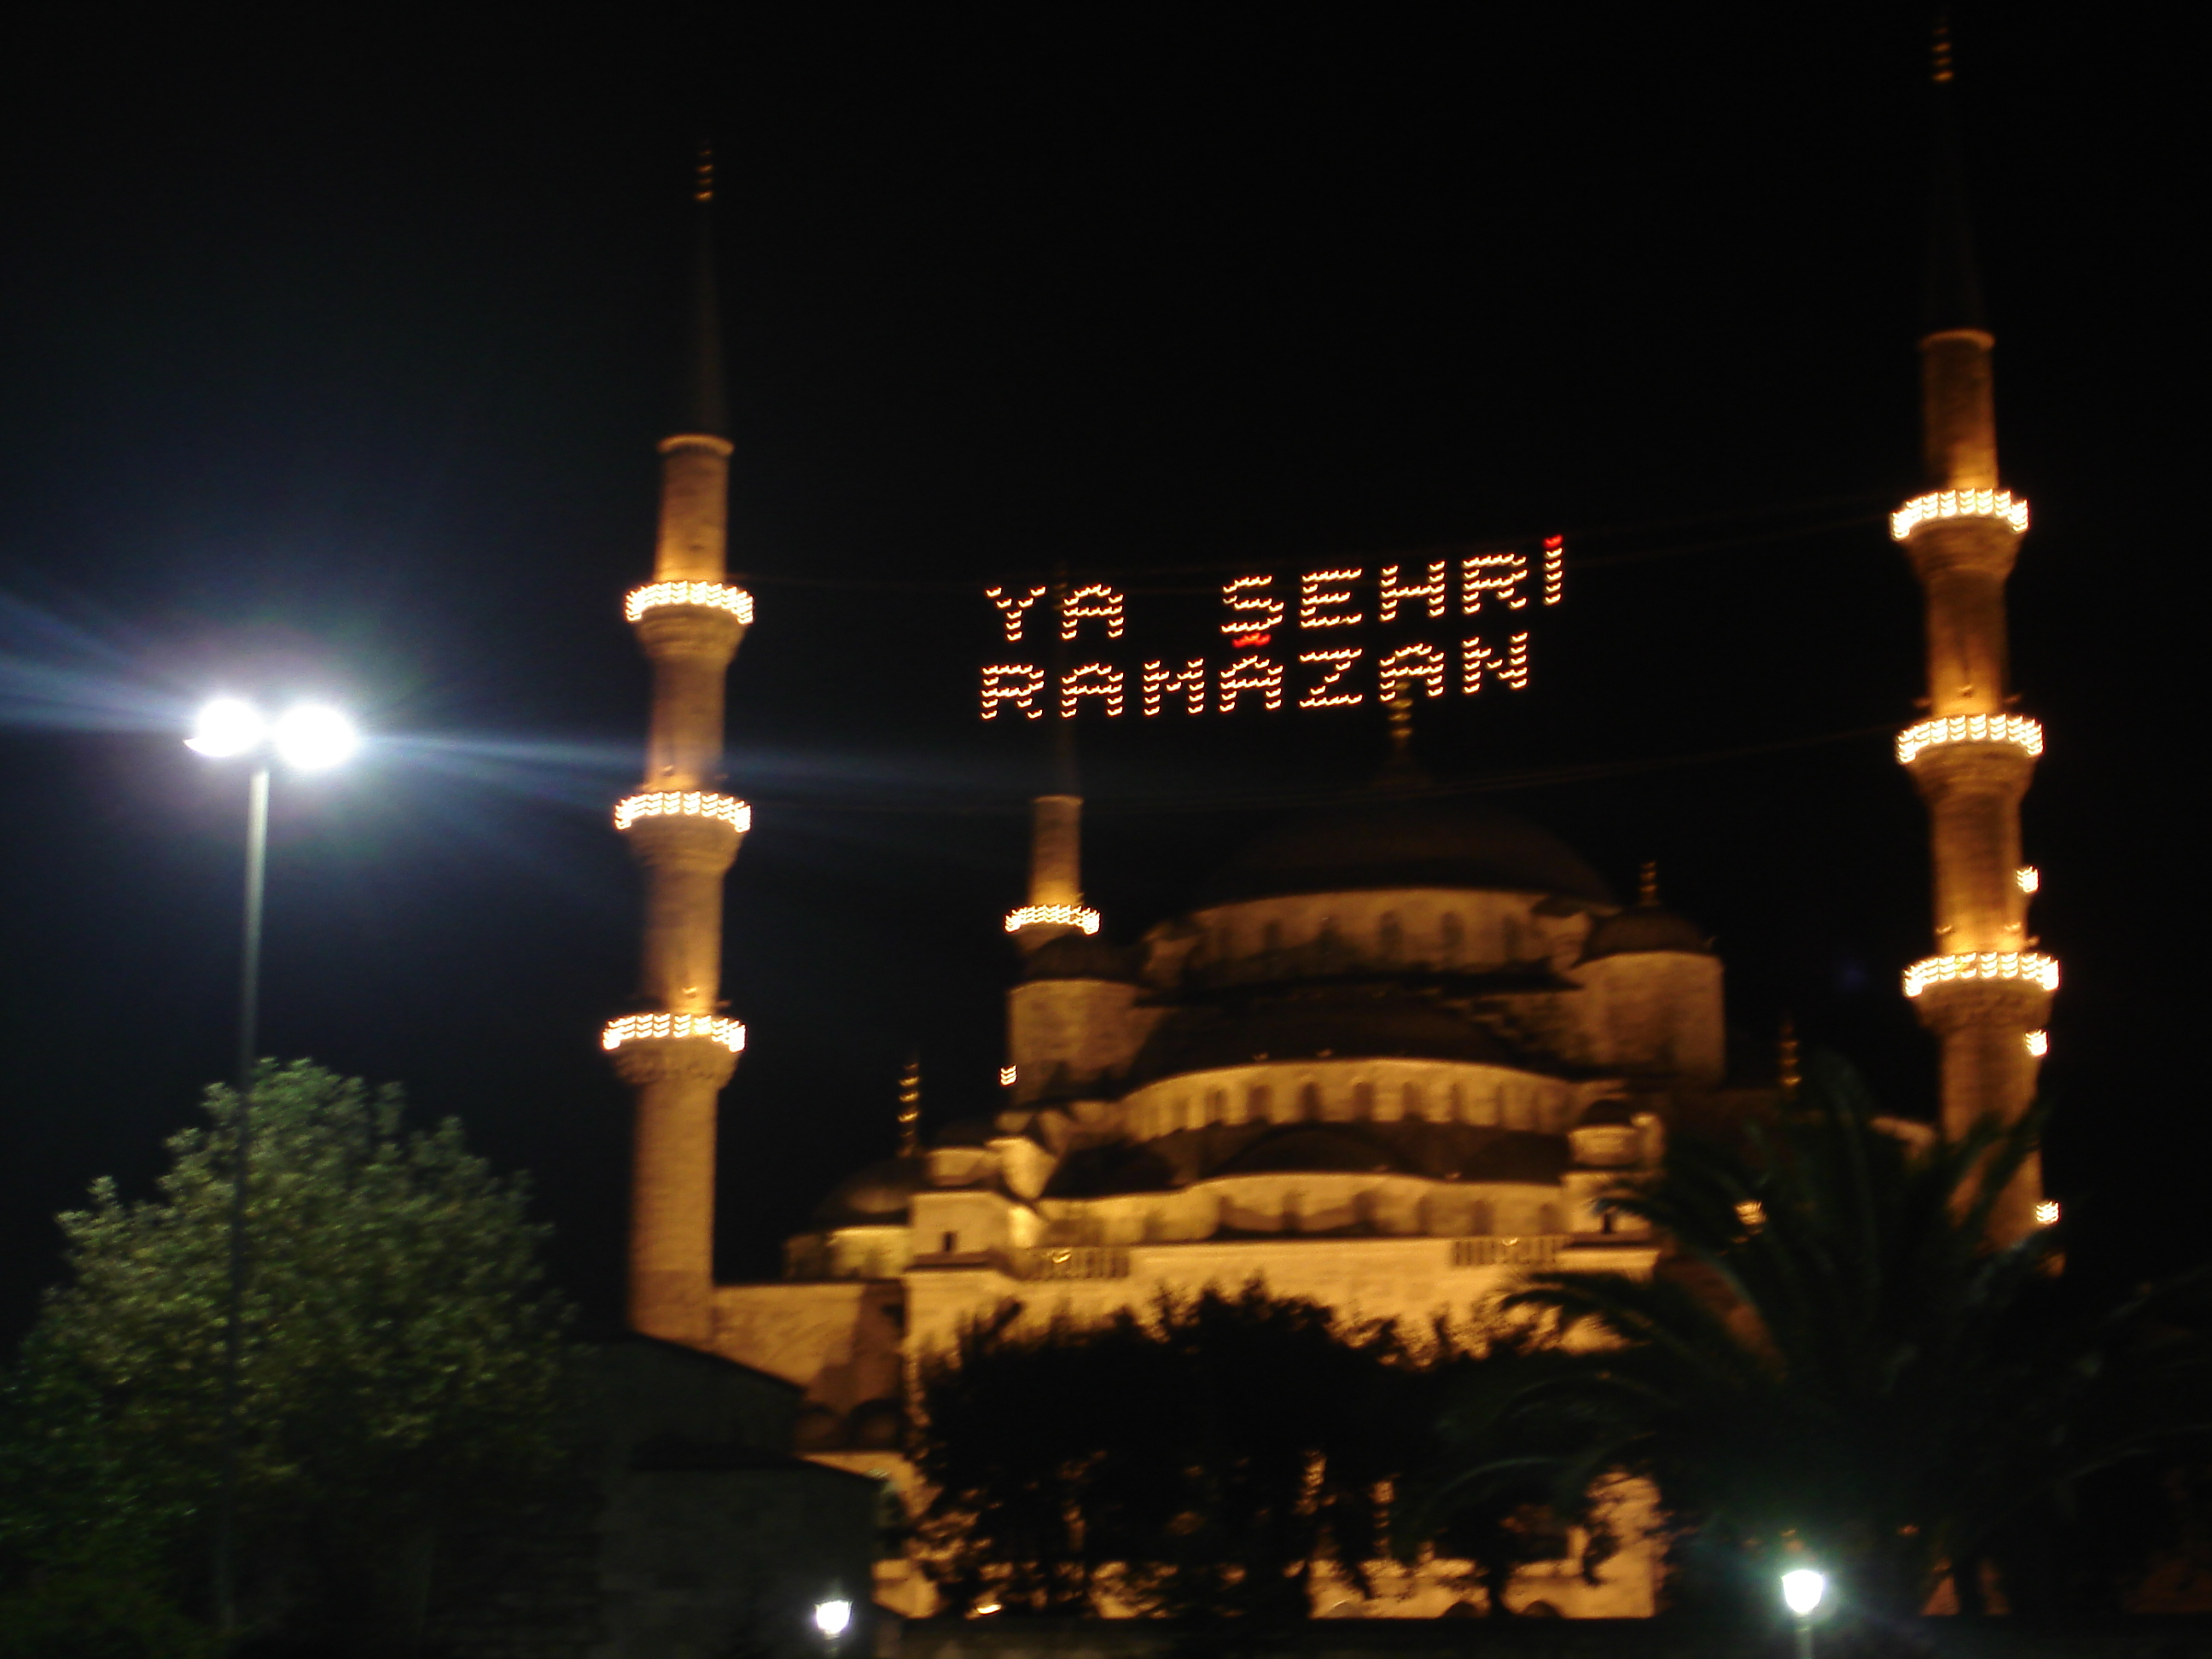 http://upload.wikimedia.org/wikipedia/commons/8/86/Istanbul.Sultanahmet.BlueMosque.Ramazan.02.jpg